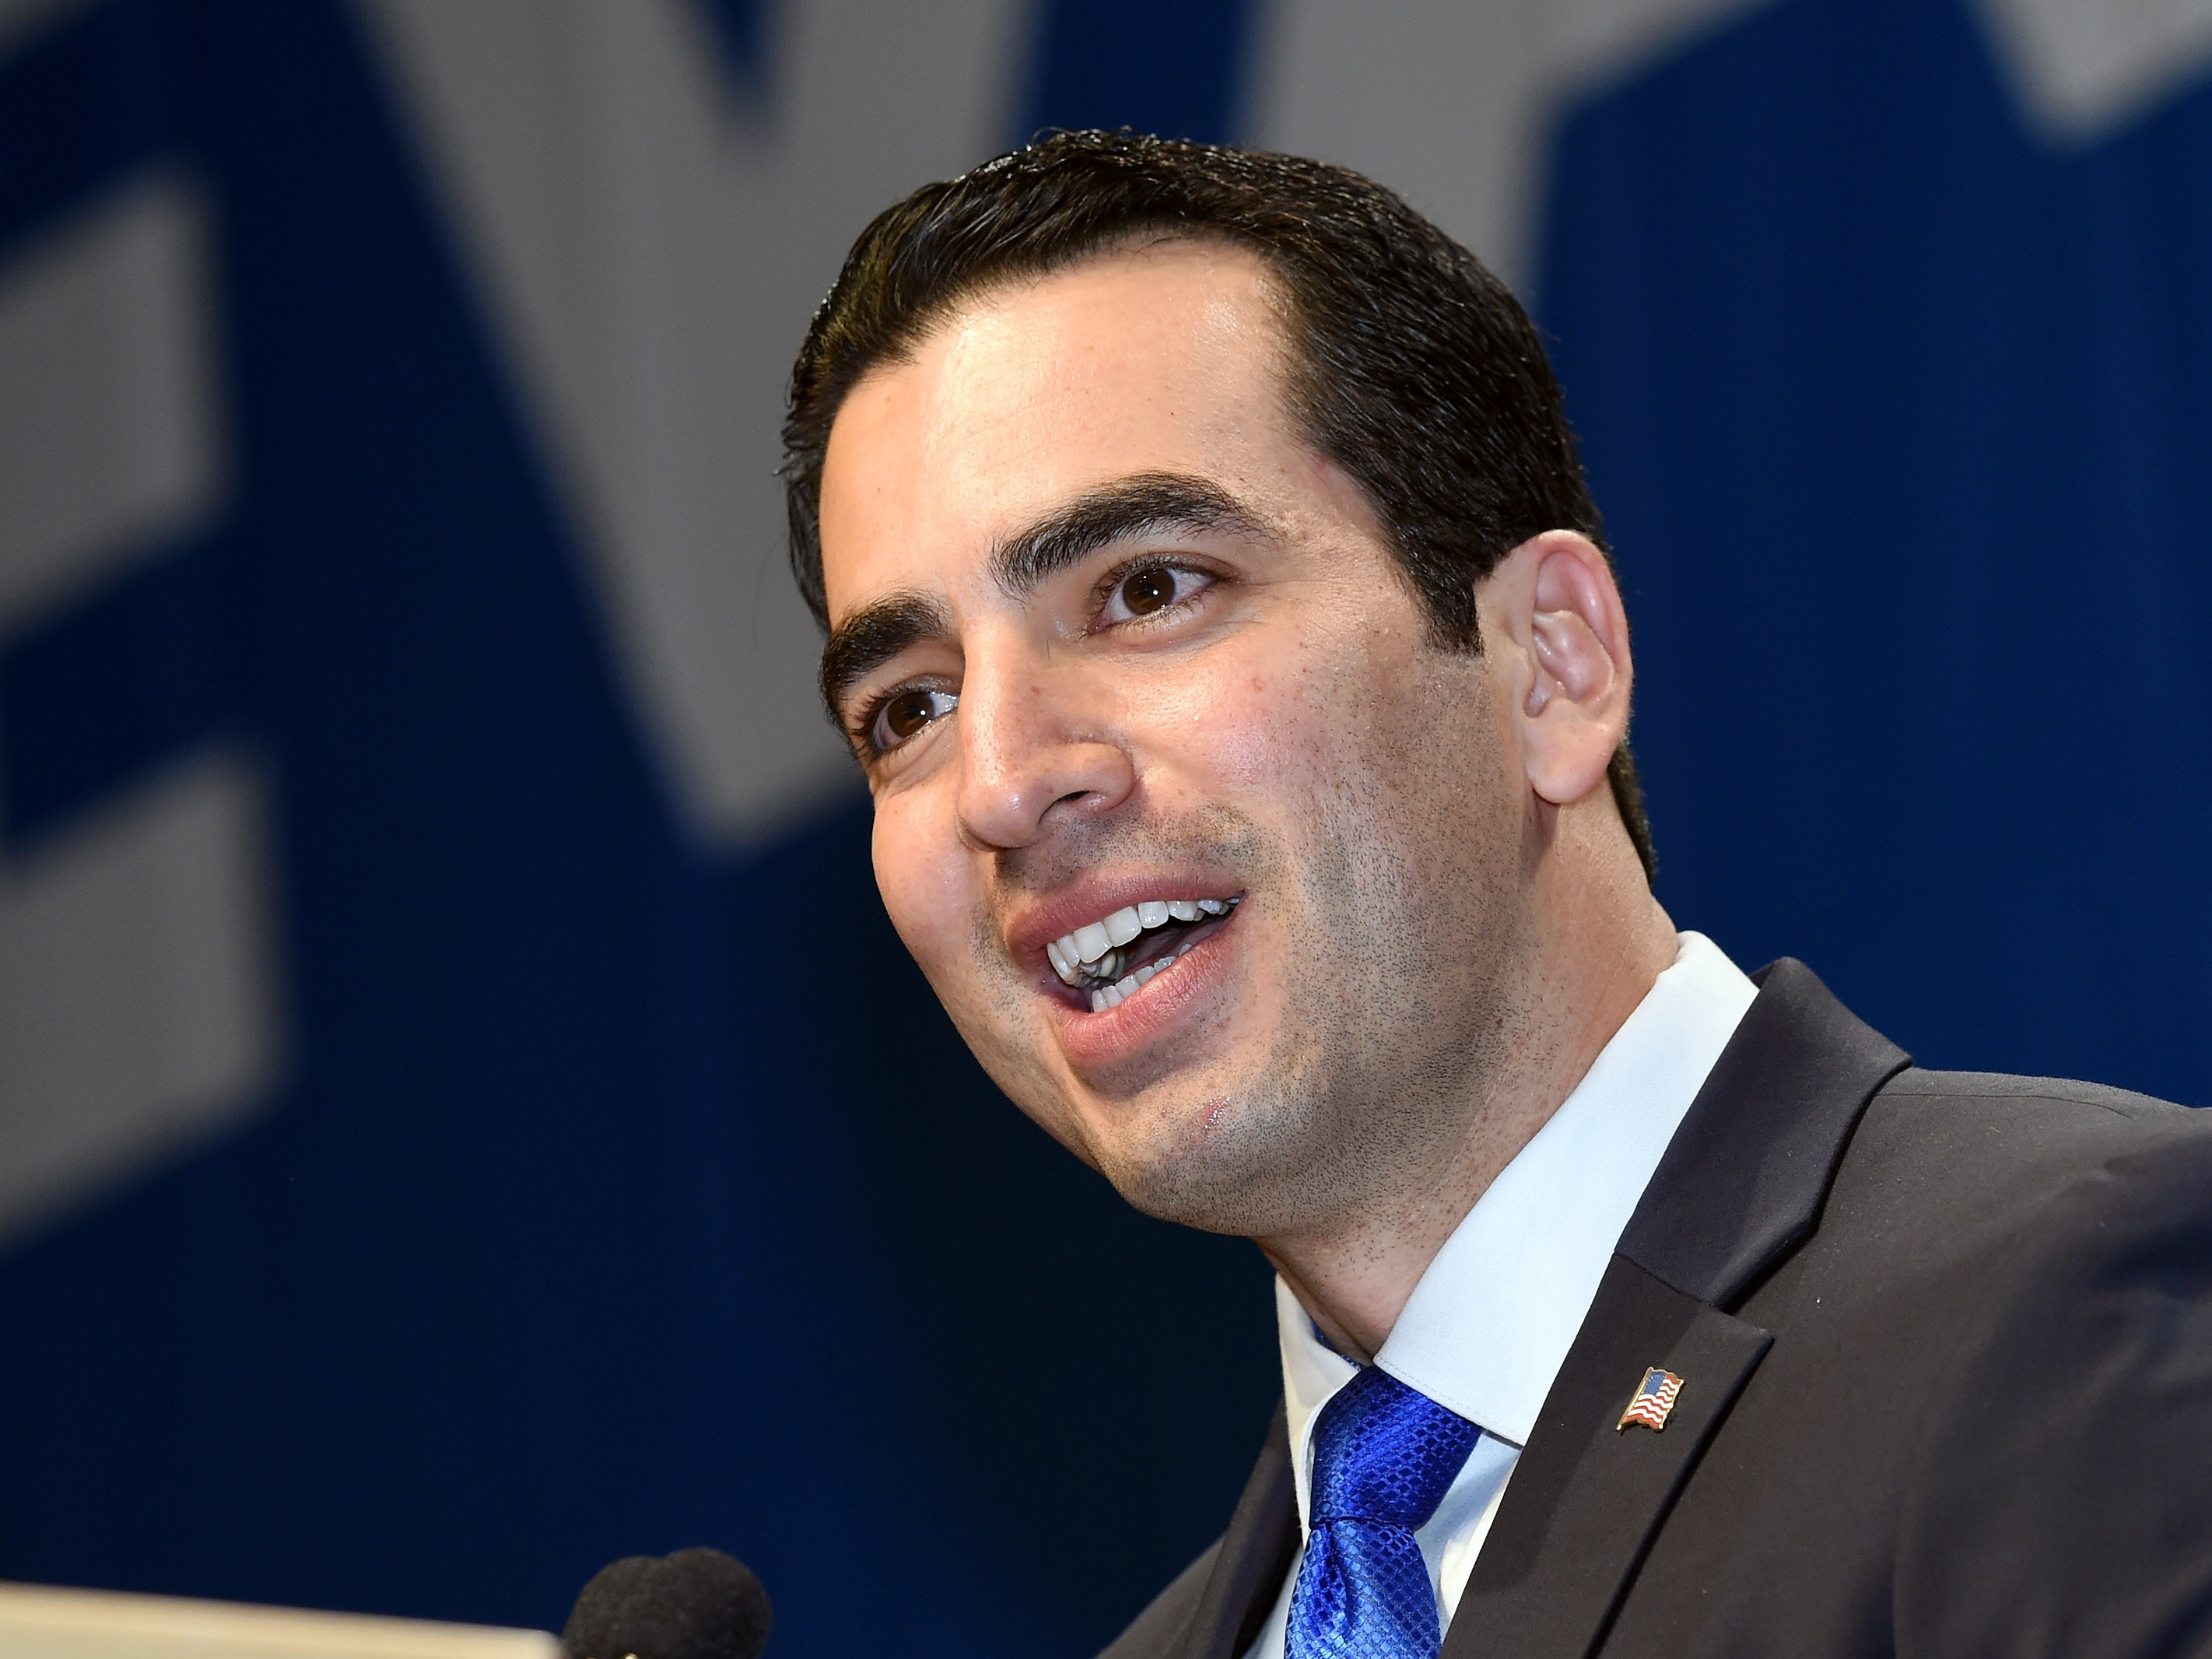 Amidst sexual misconduct allegations, Rep. Ruben Kihuen (D) will not seek re-election